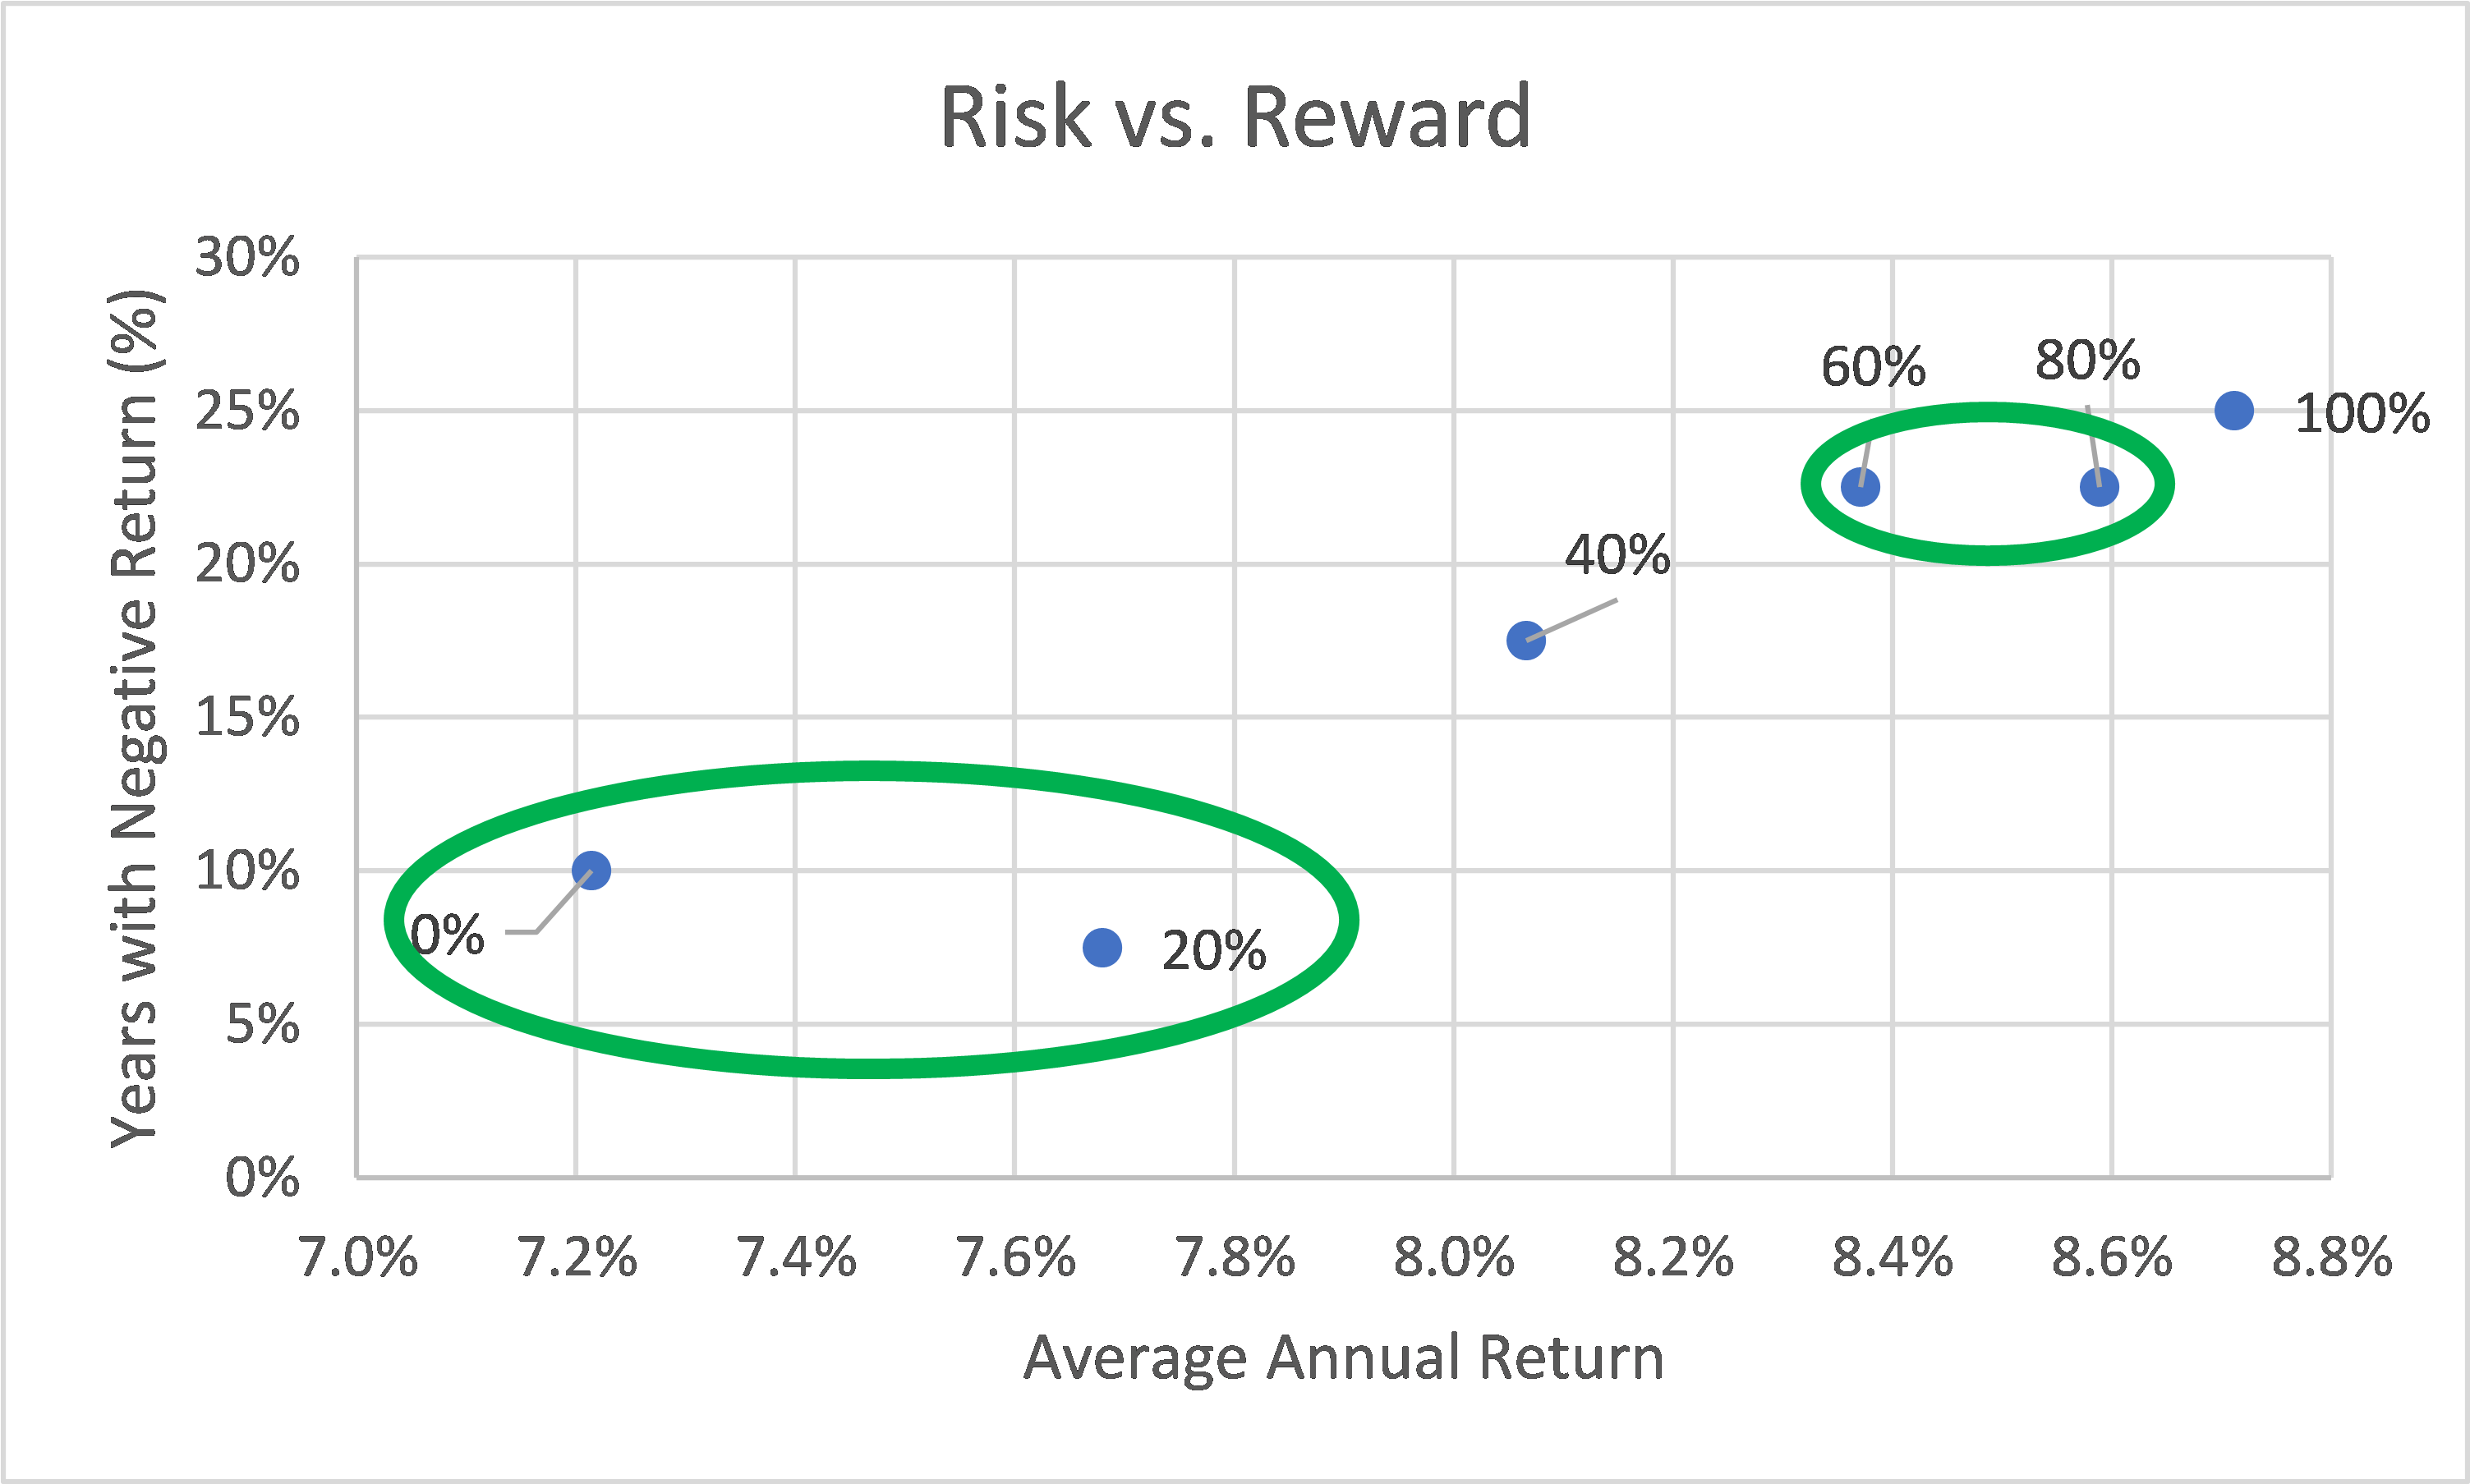 Risk vs. Reward for Different Mixes of Stock and Bonds